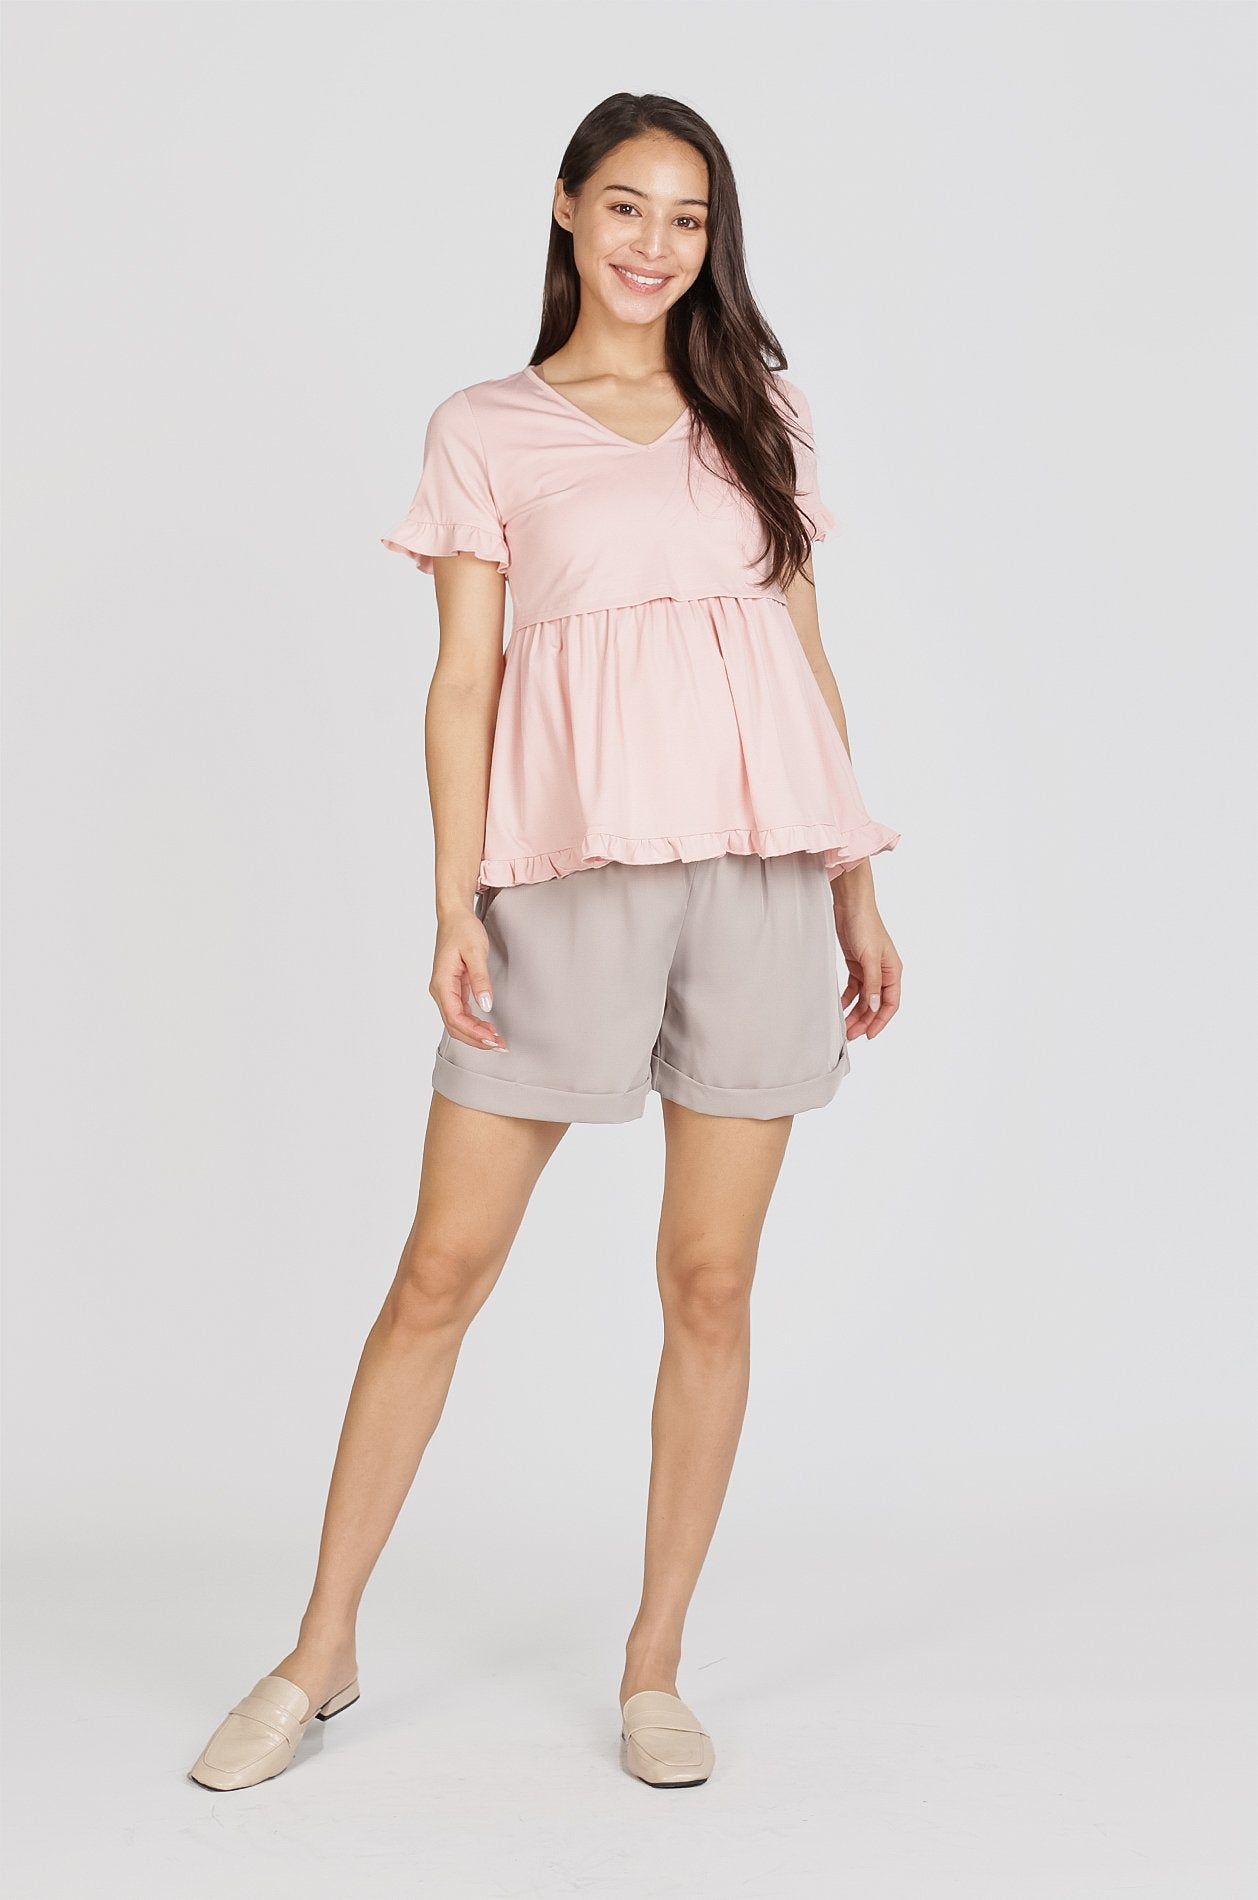 Reika Maternity Shorts In Grey Nursing Wear Jump Eat Cry